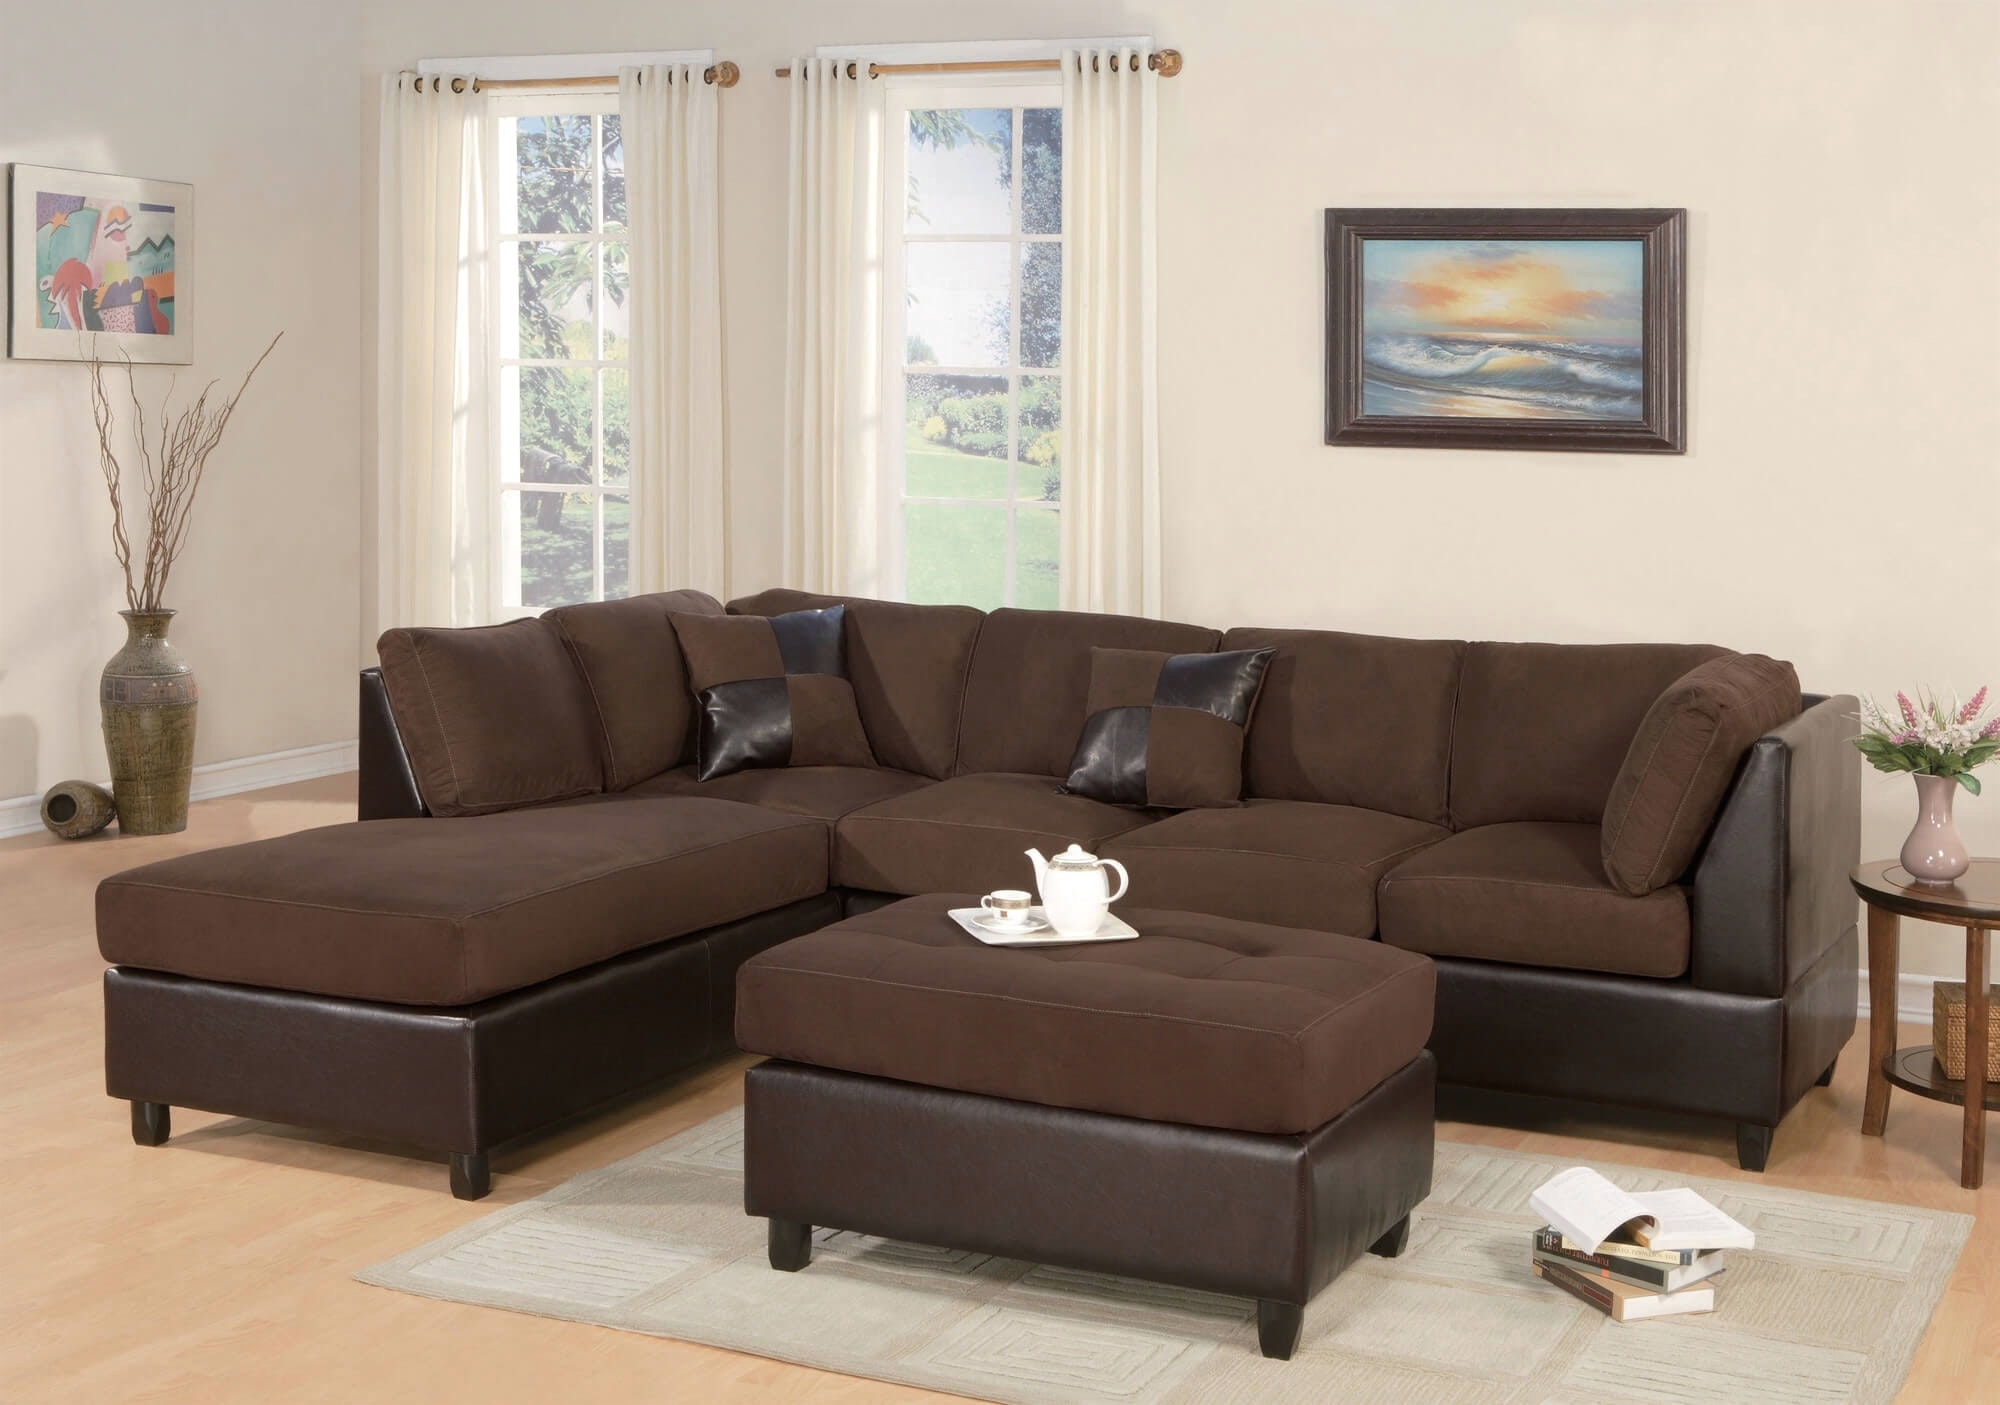 Luxury Sectional Couch Under 1000 12 For Your Sofas And Couches Set for Sectional Sofas Under 1000 (Image 11 of 15)